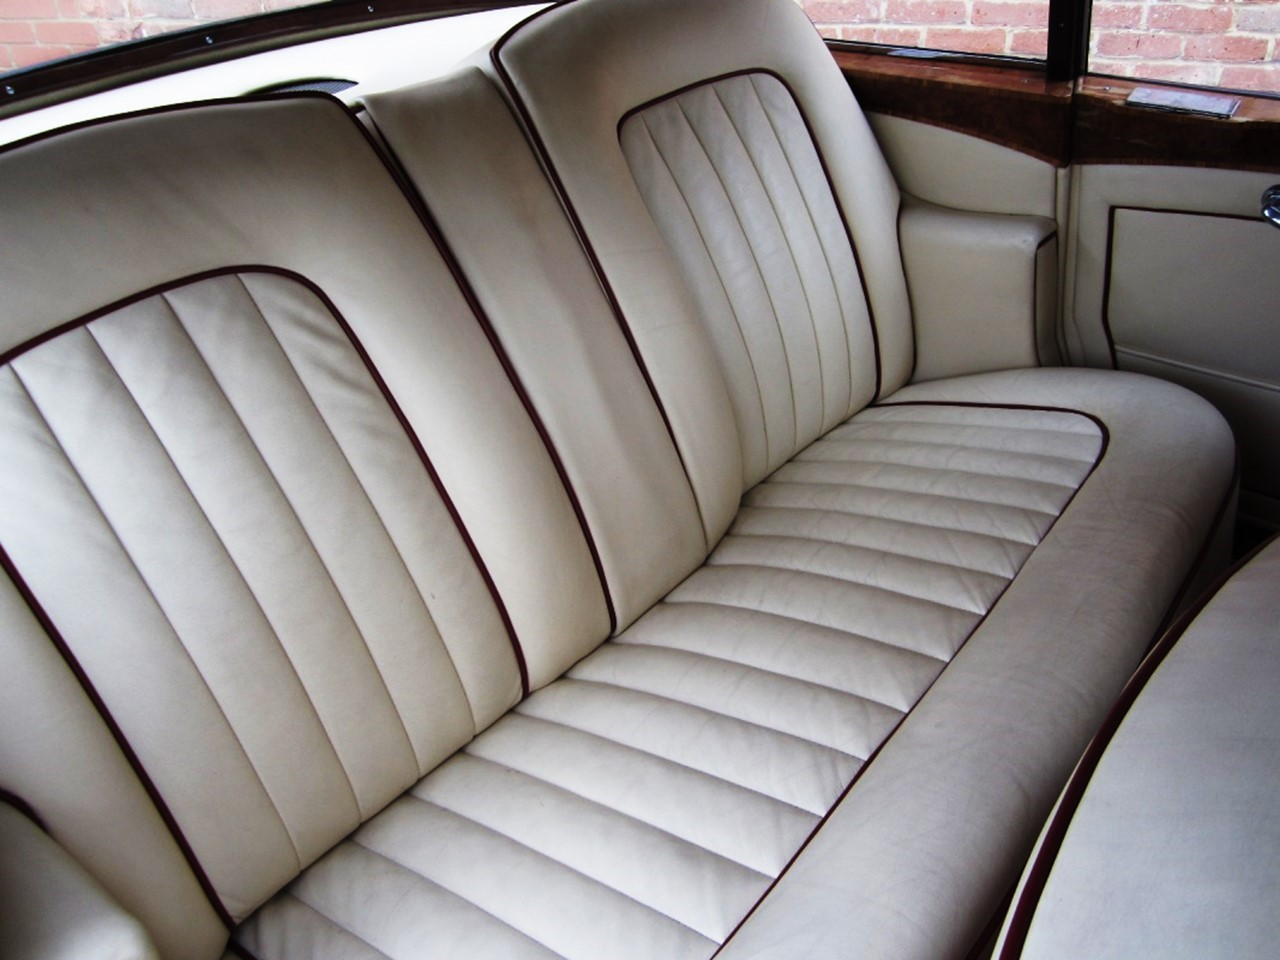 1965 Silver Cloud III Mulliner Flying Spur 6